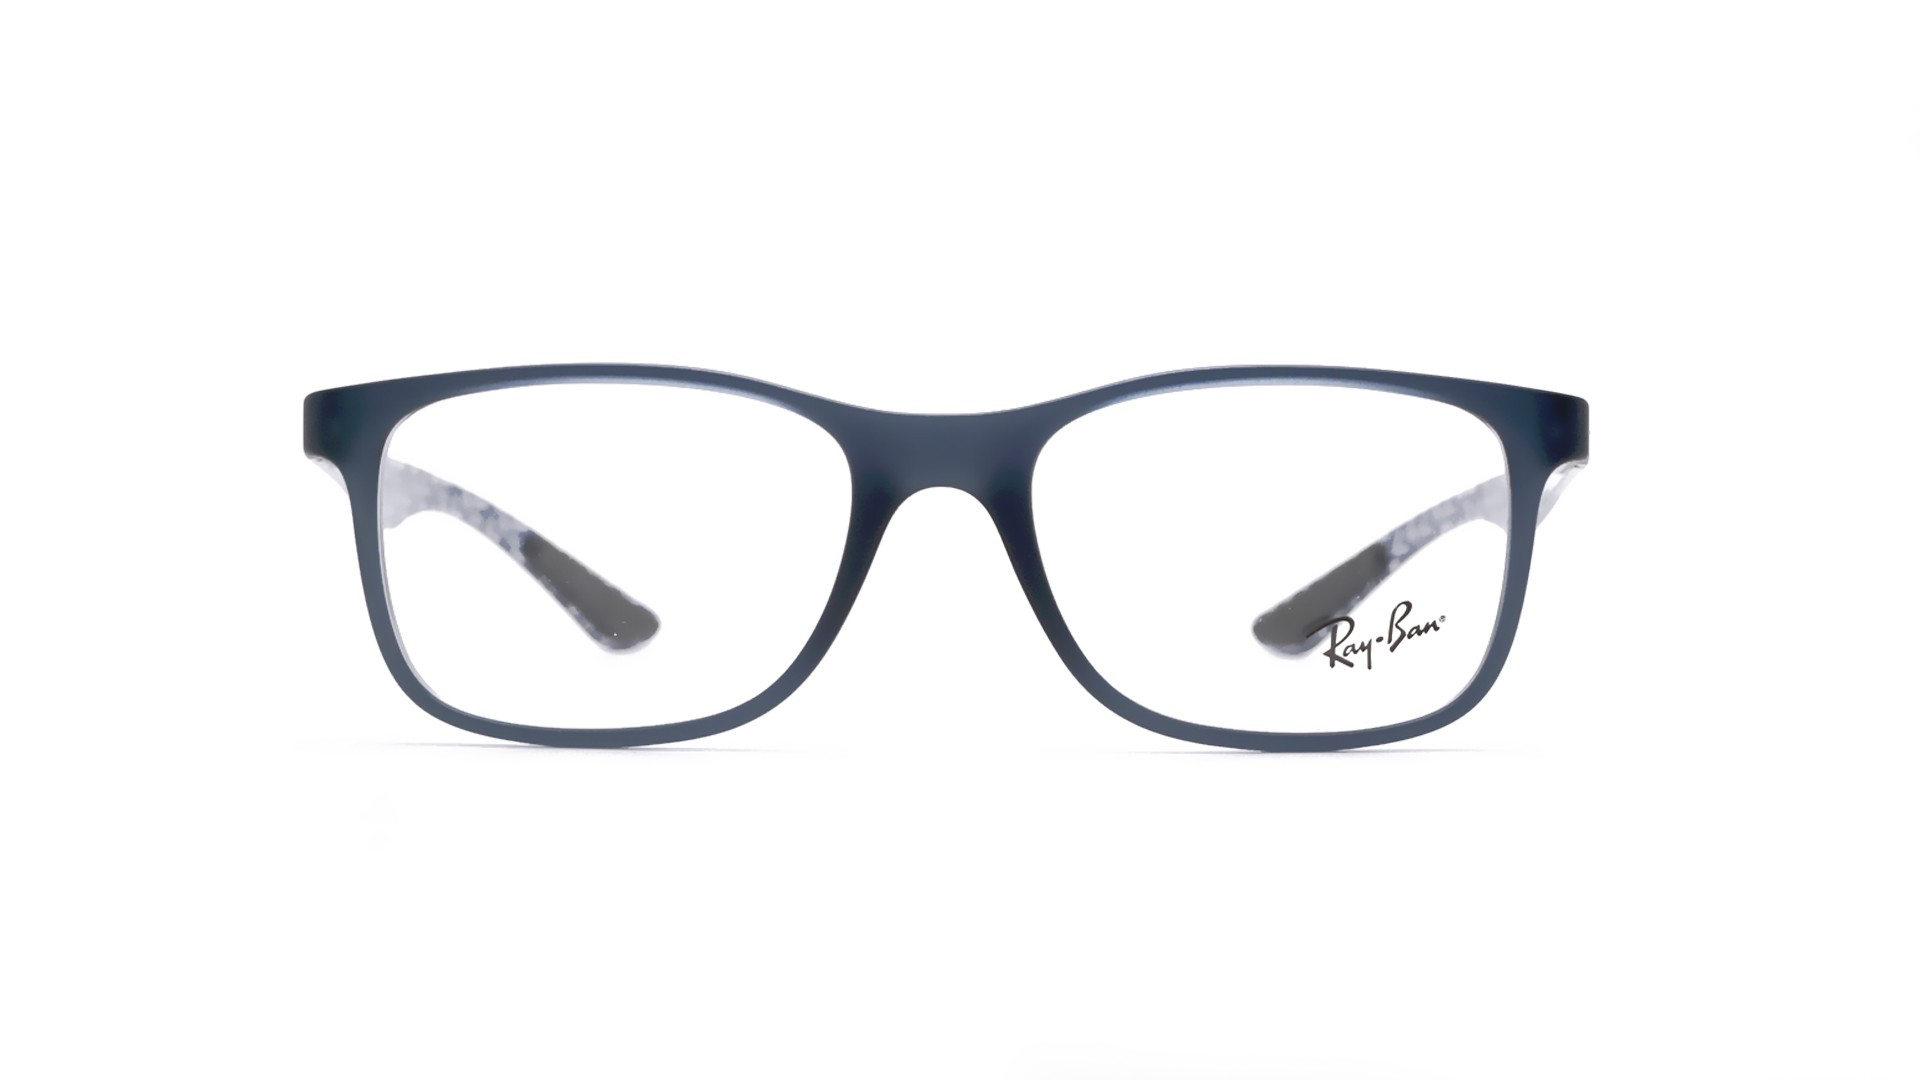 9ab06c76c59 Eyeglasses Ray-Ban RX8903 RB8903 5262 53-18 Blue Matte Medium